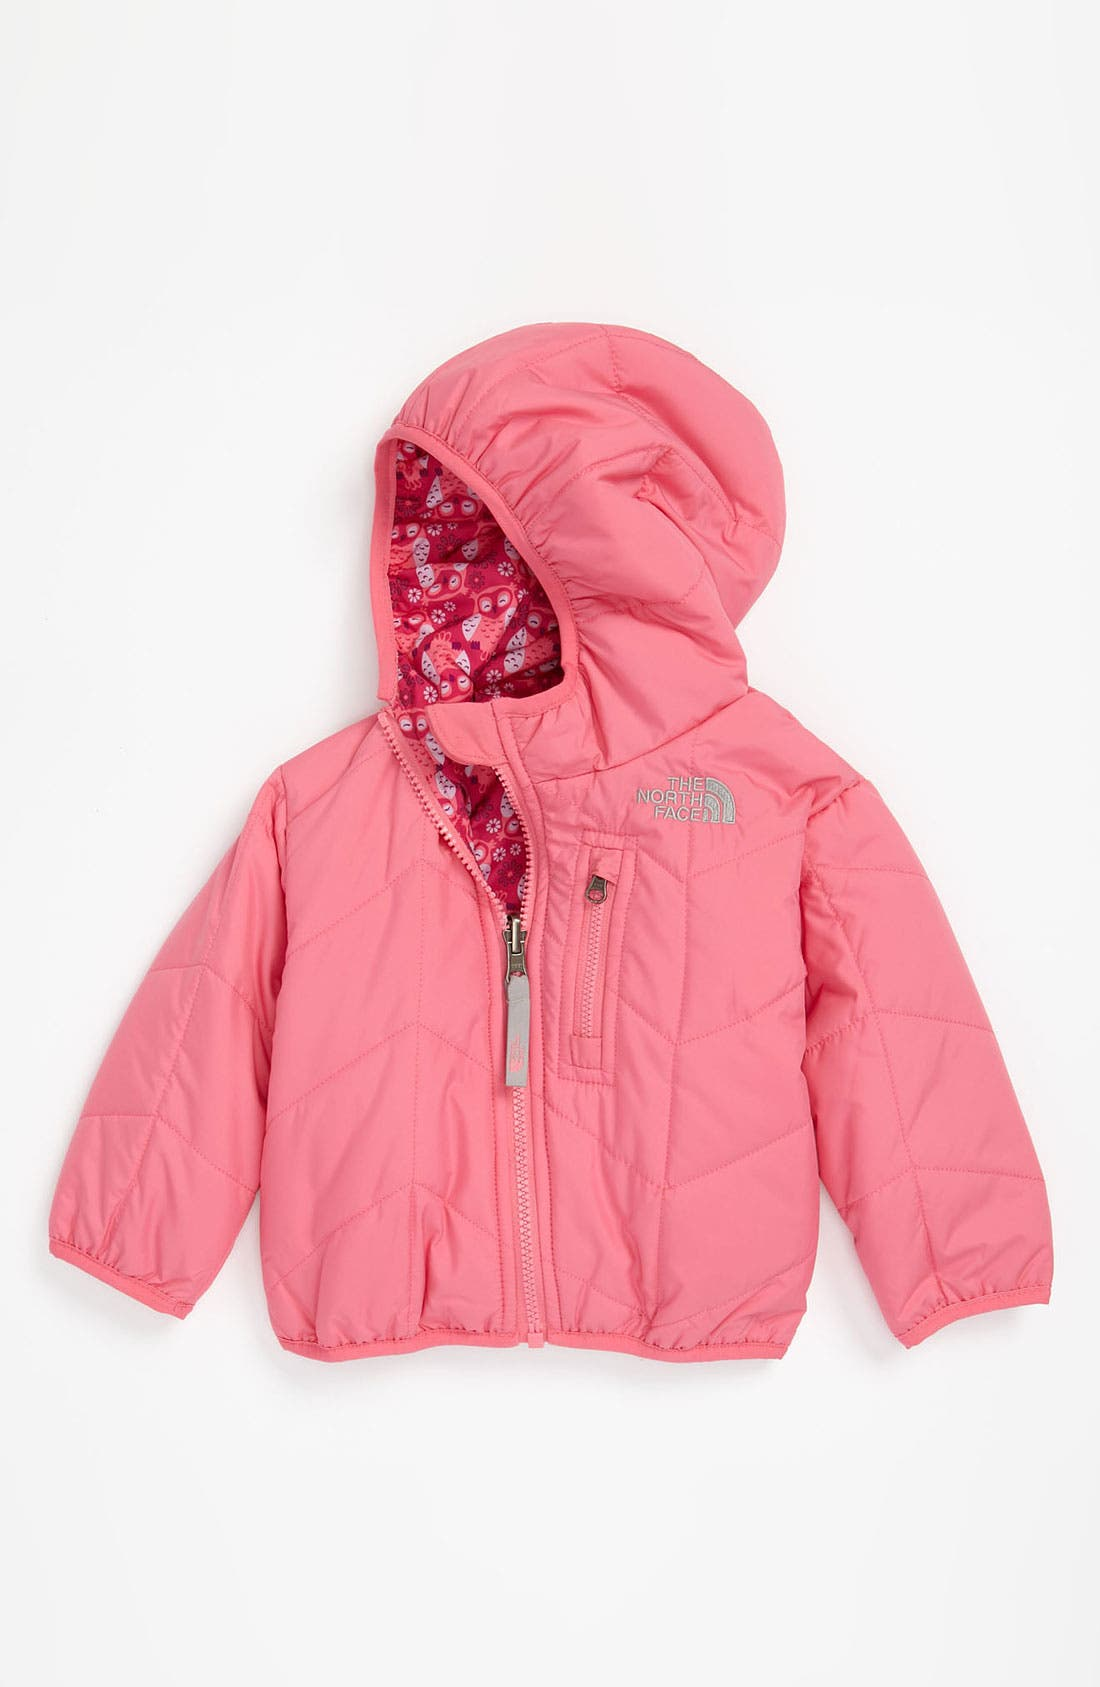 Alternate Image 1 Selected - The North Face 'Perrito' Reversible Jacket (Infant)